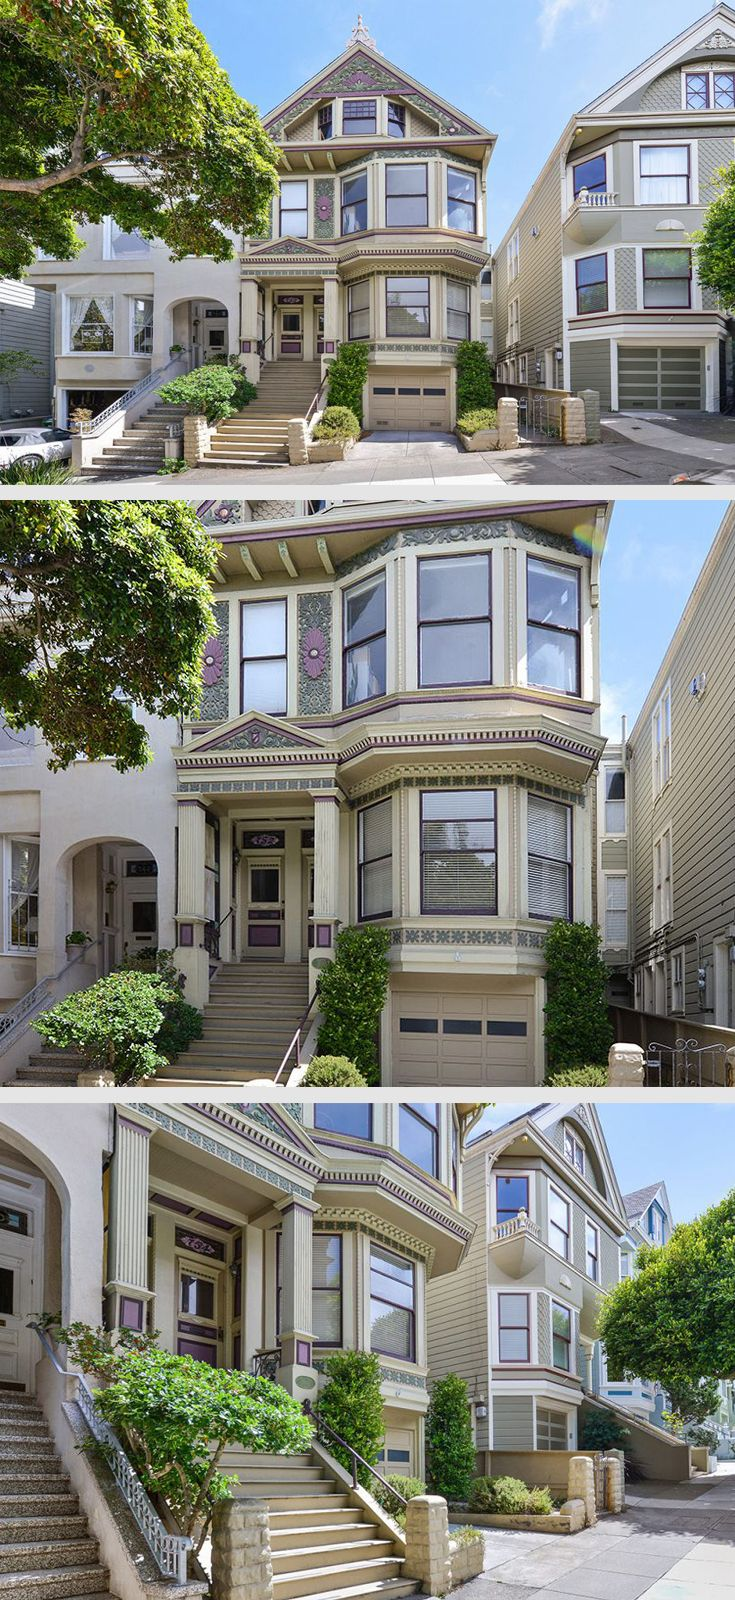 Haight-Ashbury Victorian Stunner  Built in 1895, 754 Clayton Street is a three-bedroom, two-bathroom condo with one-car parking and a deeded back yard in a two-unit Victorian building located in San Francisco's Haight-Ashbury District. #sanfrancisco #sf #victorian #architecture #homes #landscape #realestate #bayarea